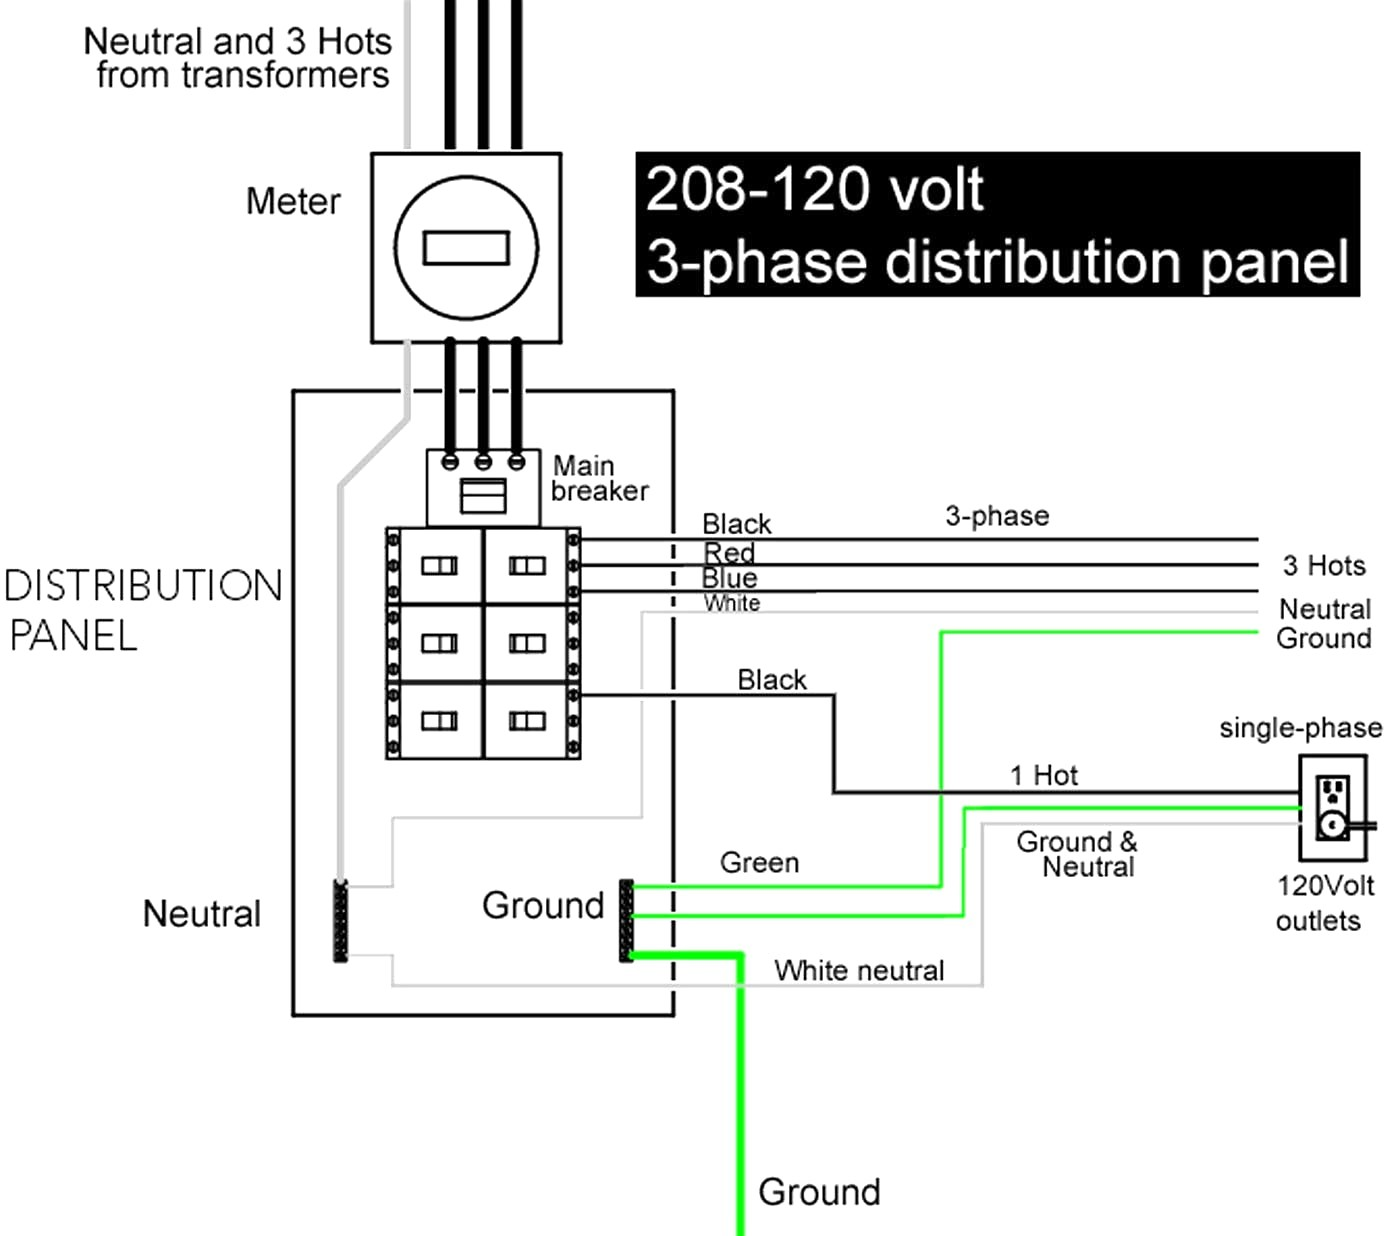 3 Phase Transformer Wiring Diagram Breaker 3 20 Stefvandenheuvel Nl \u2022 3 Phase Power Wiring Diagram 208 3 Phase Wiring Diagram